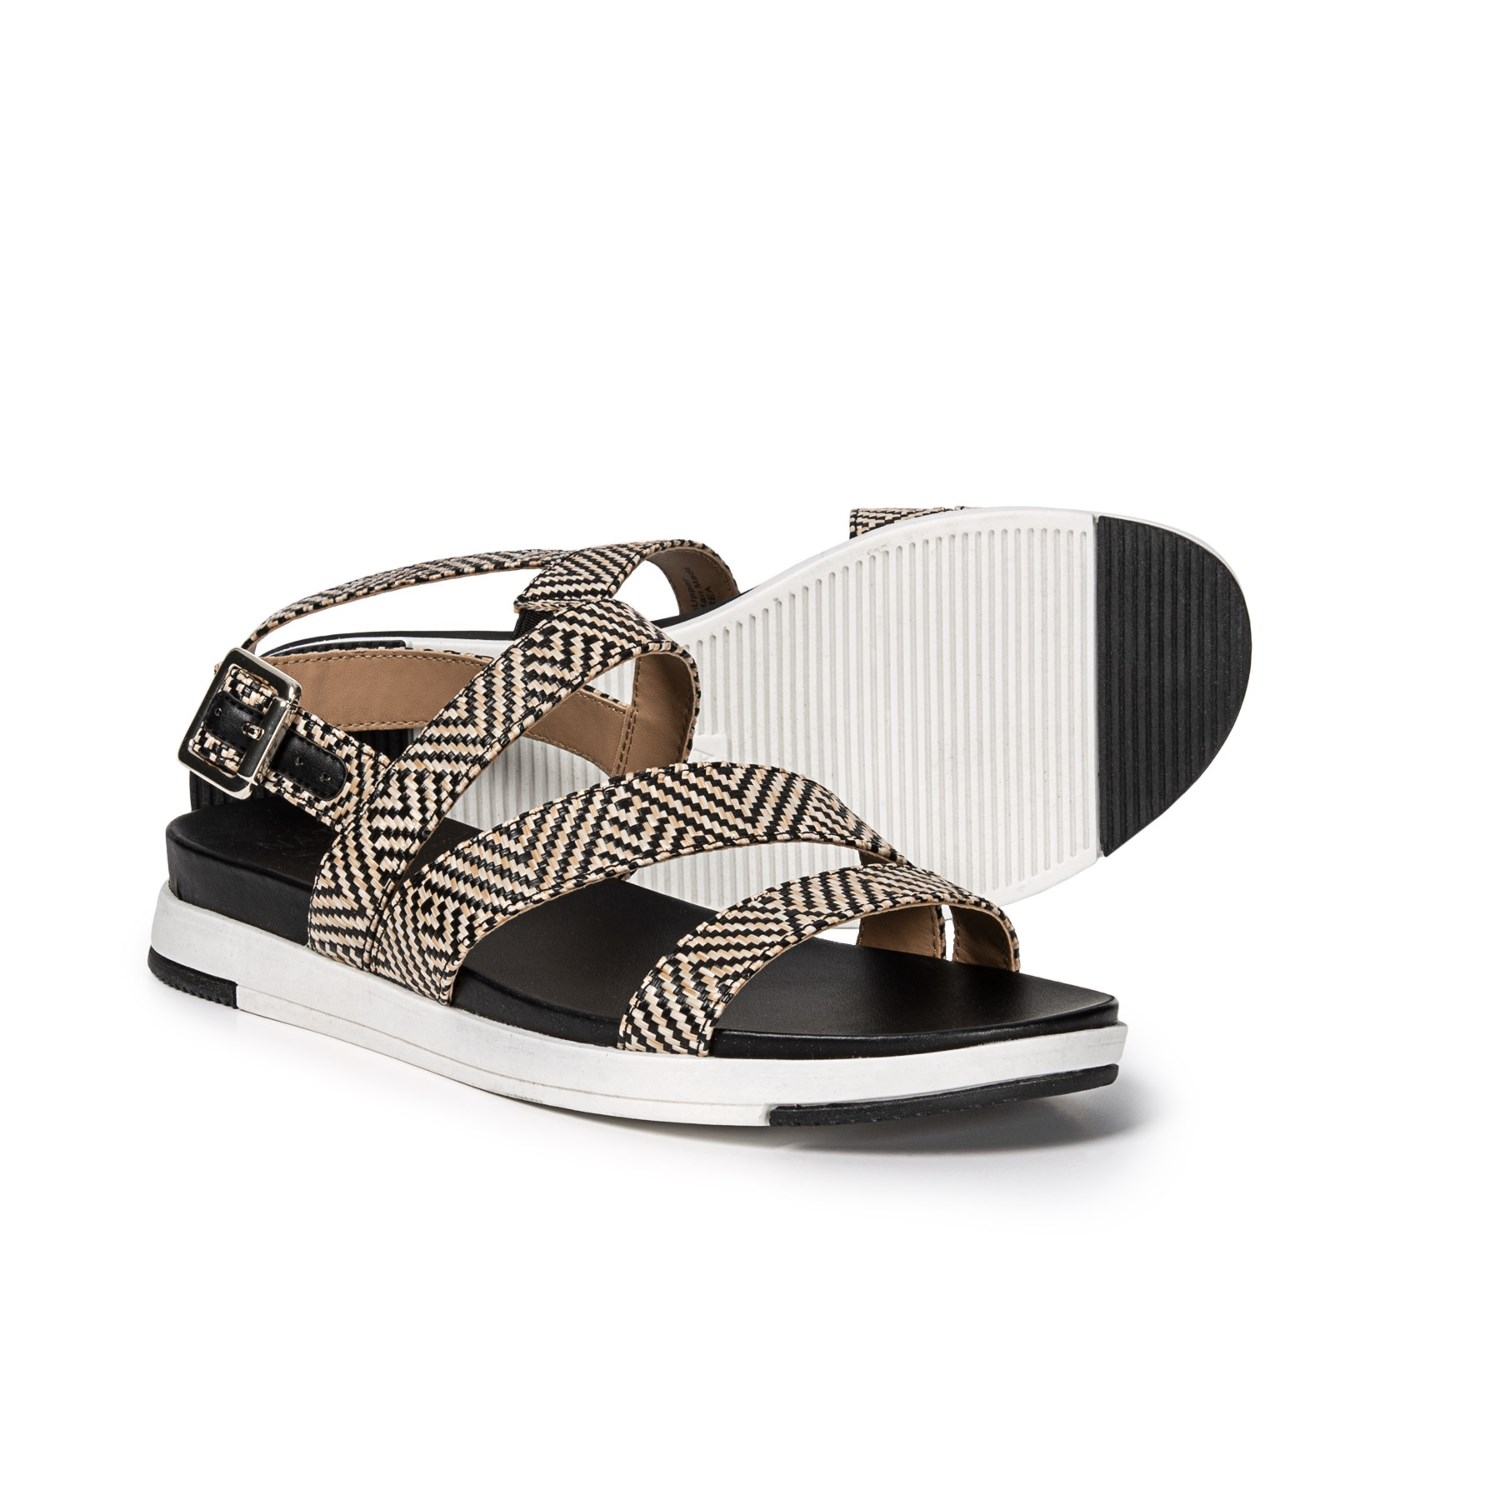 7090687d0177 Naturalizer Andrea Strappy Sandals (For Women) in Black Woven